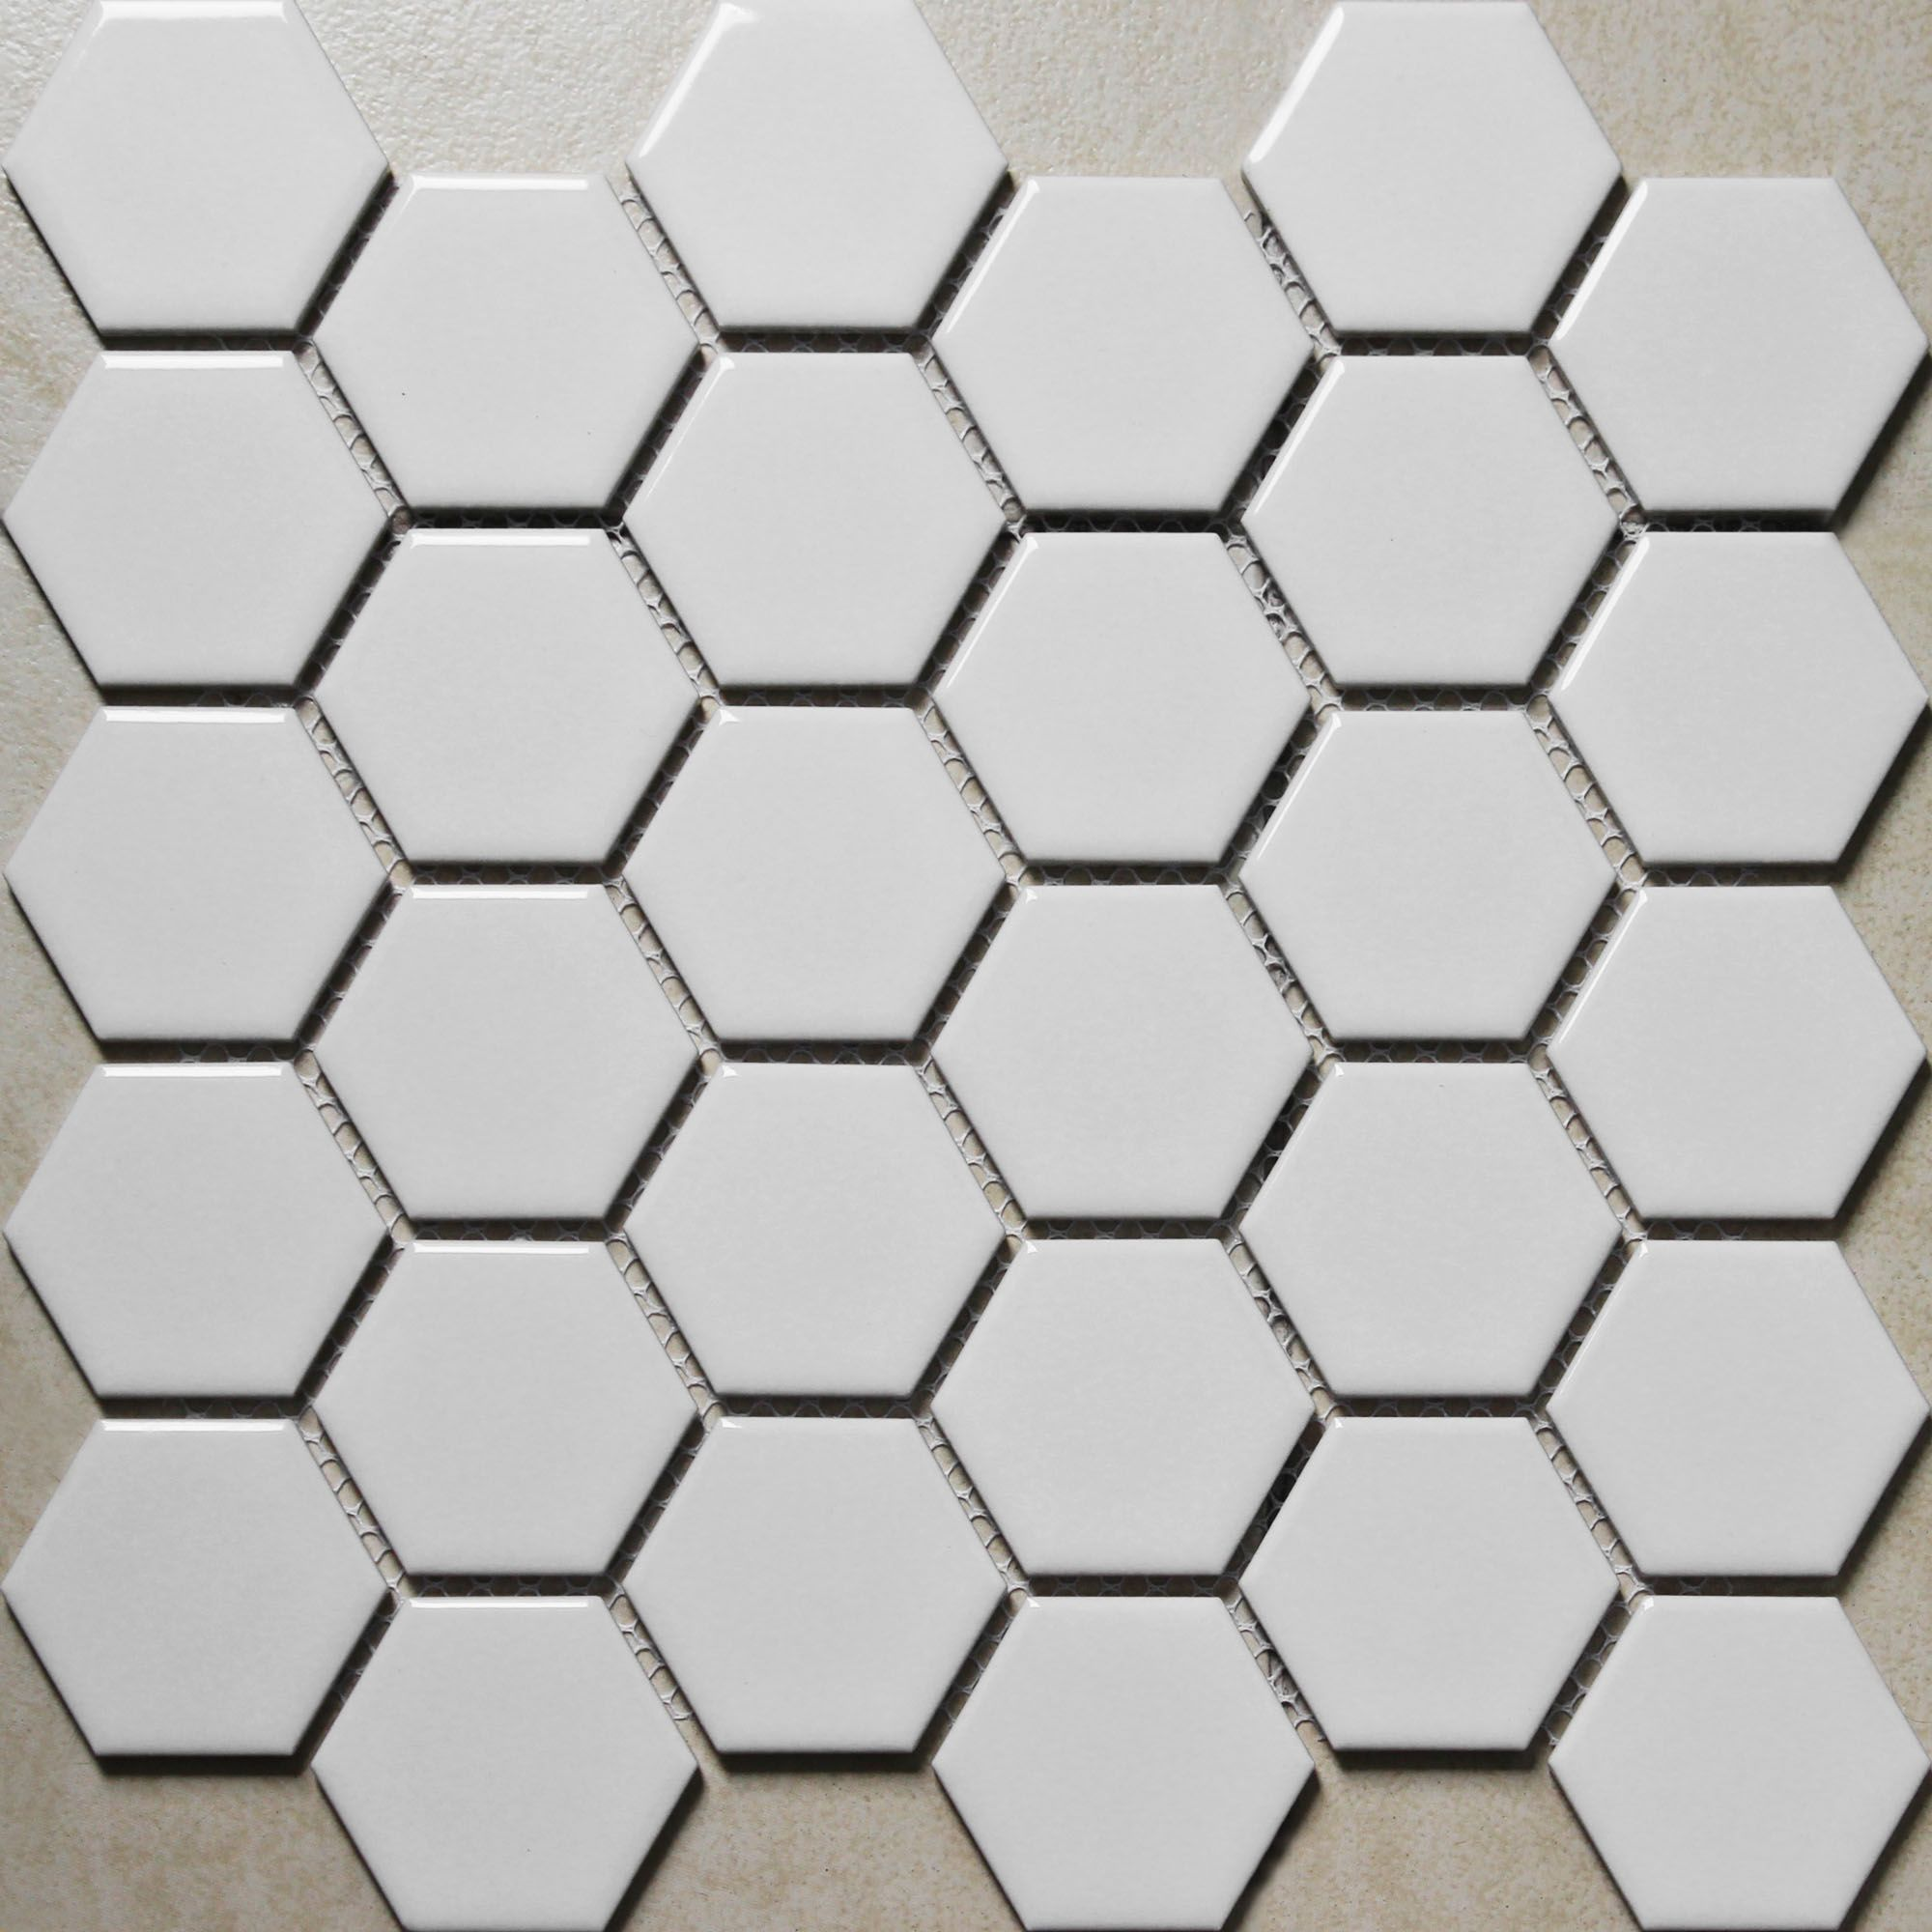 Blanc hexagonal grande mosa que de c ramique carreaux de for Carreaux ceramique salle de bain